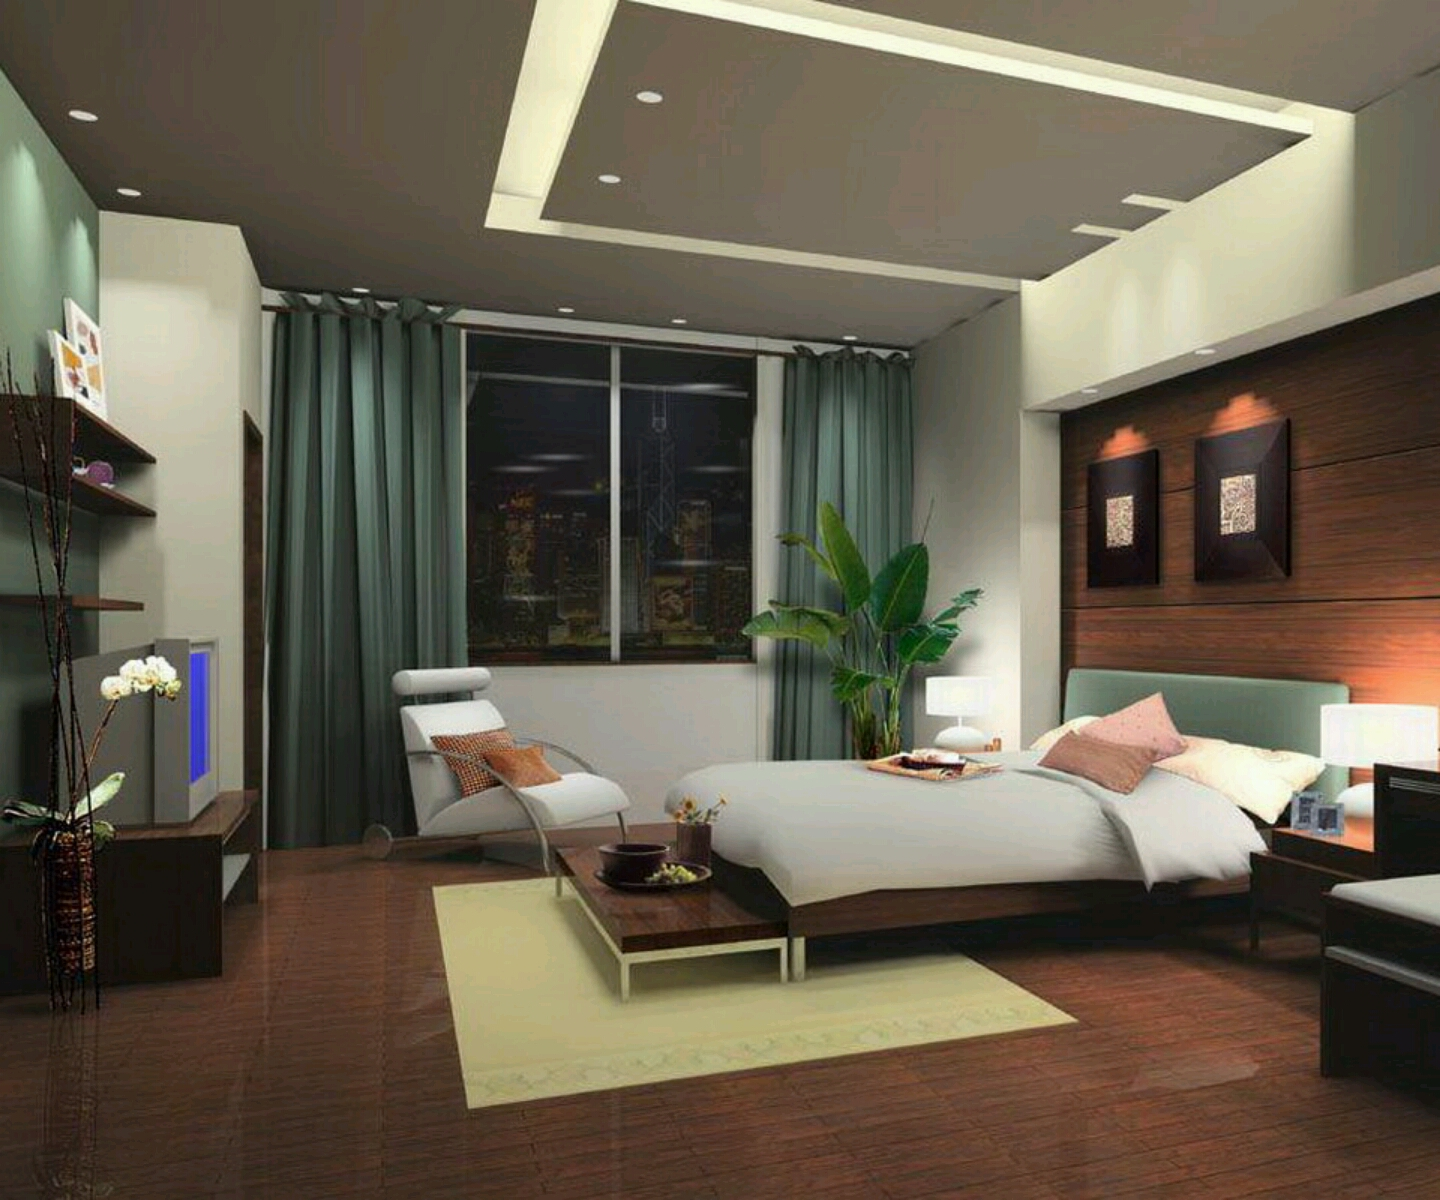 New home designs latest modern bedrooms designs best ideas for Latest room interior